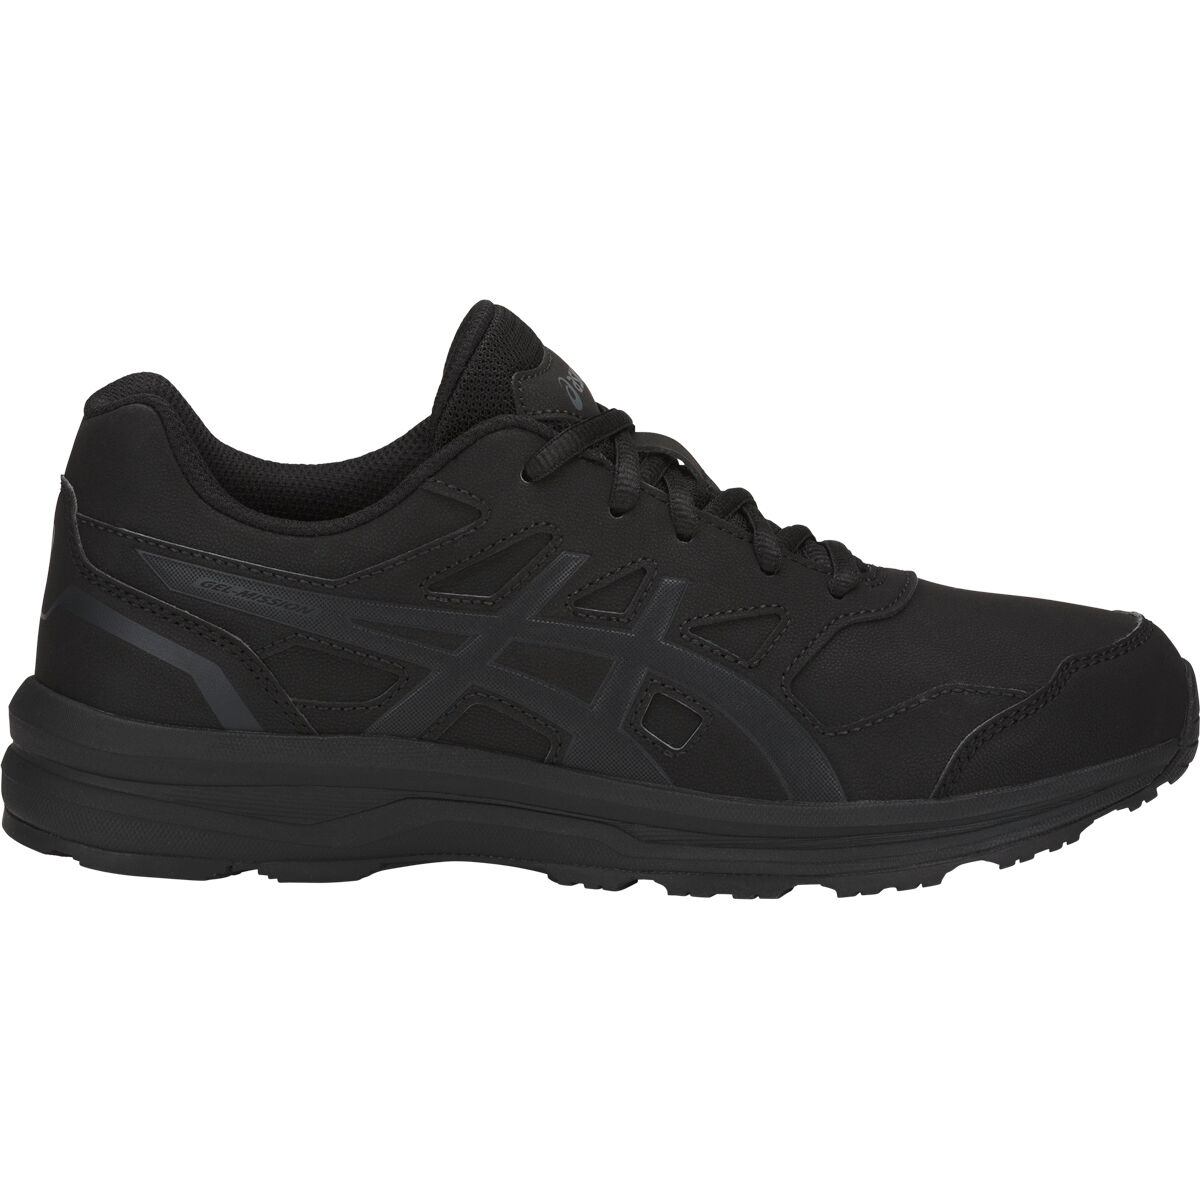 Gel-Mission 3 Damen Walkingschuh, schwarz, 39